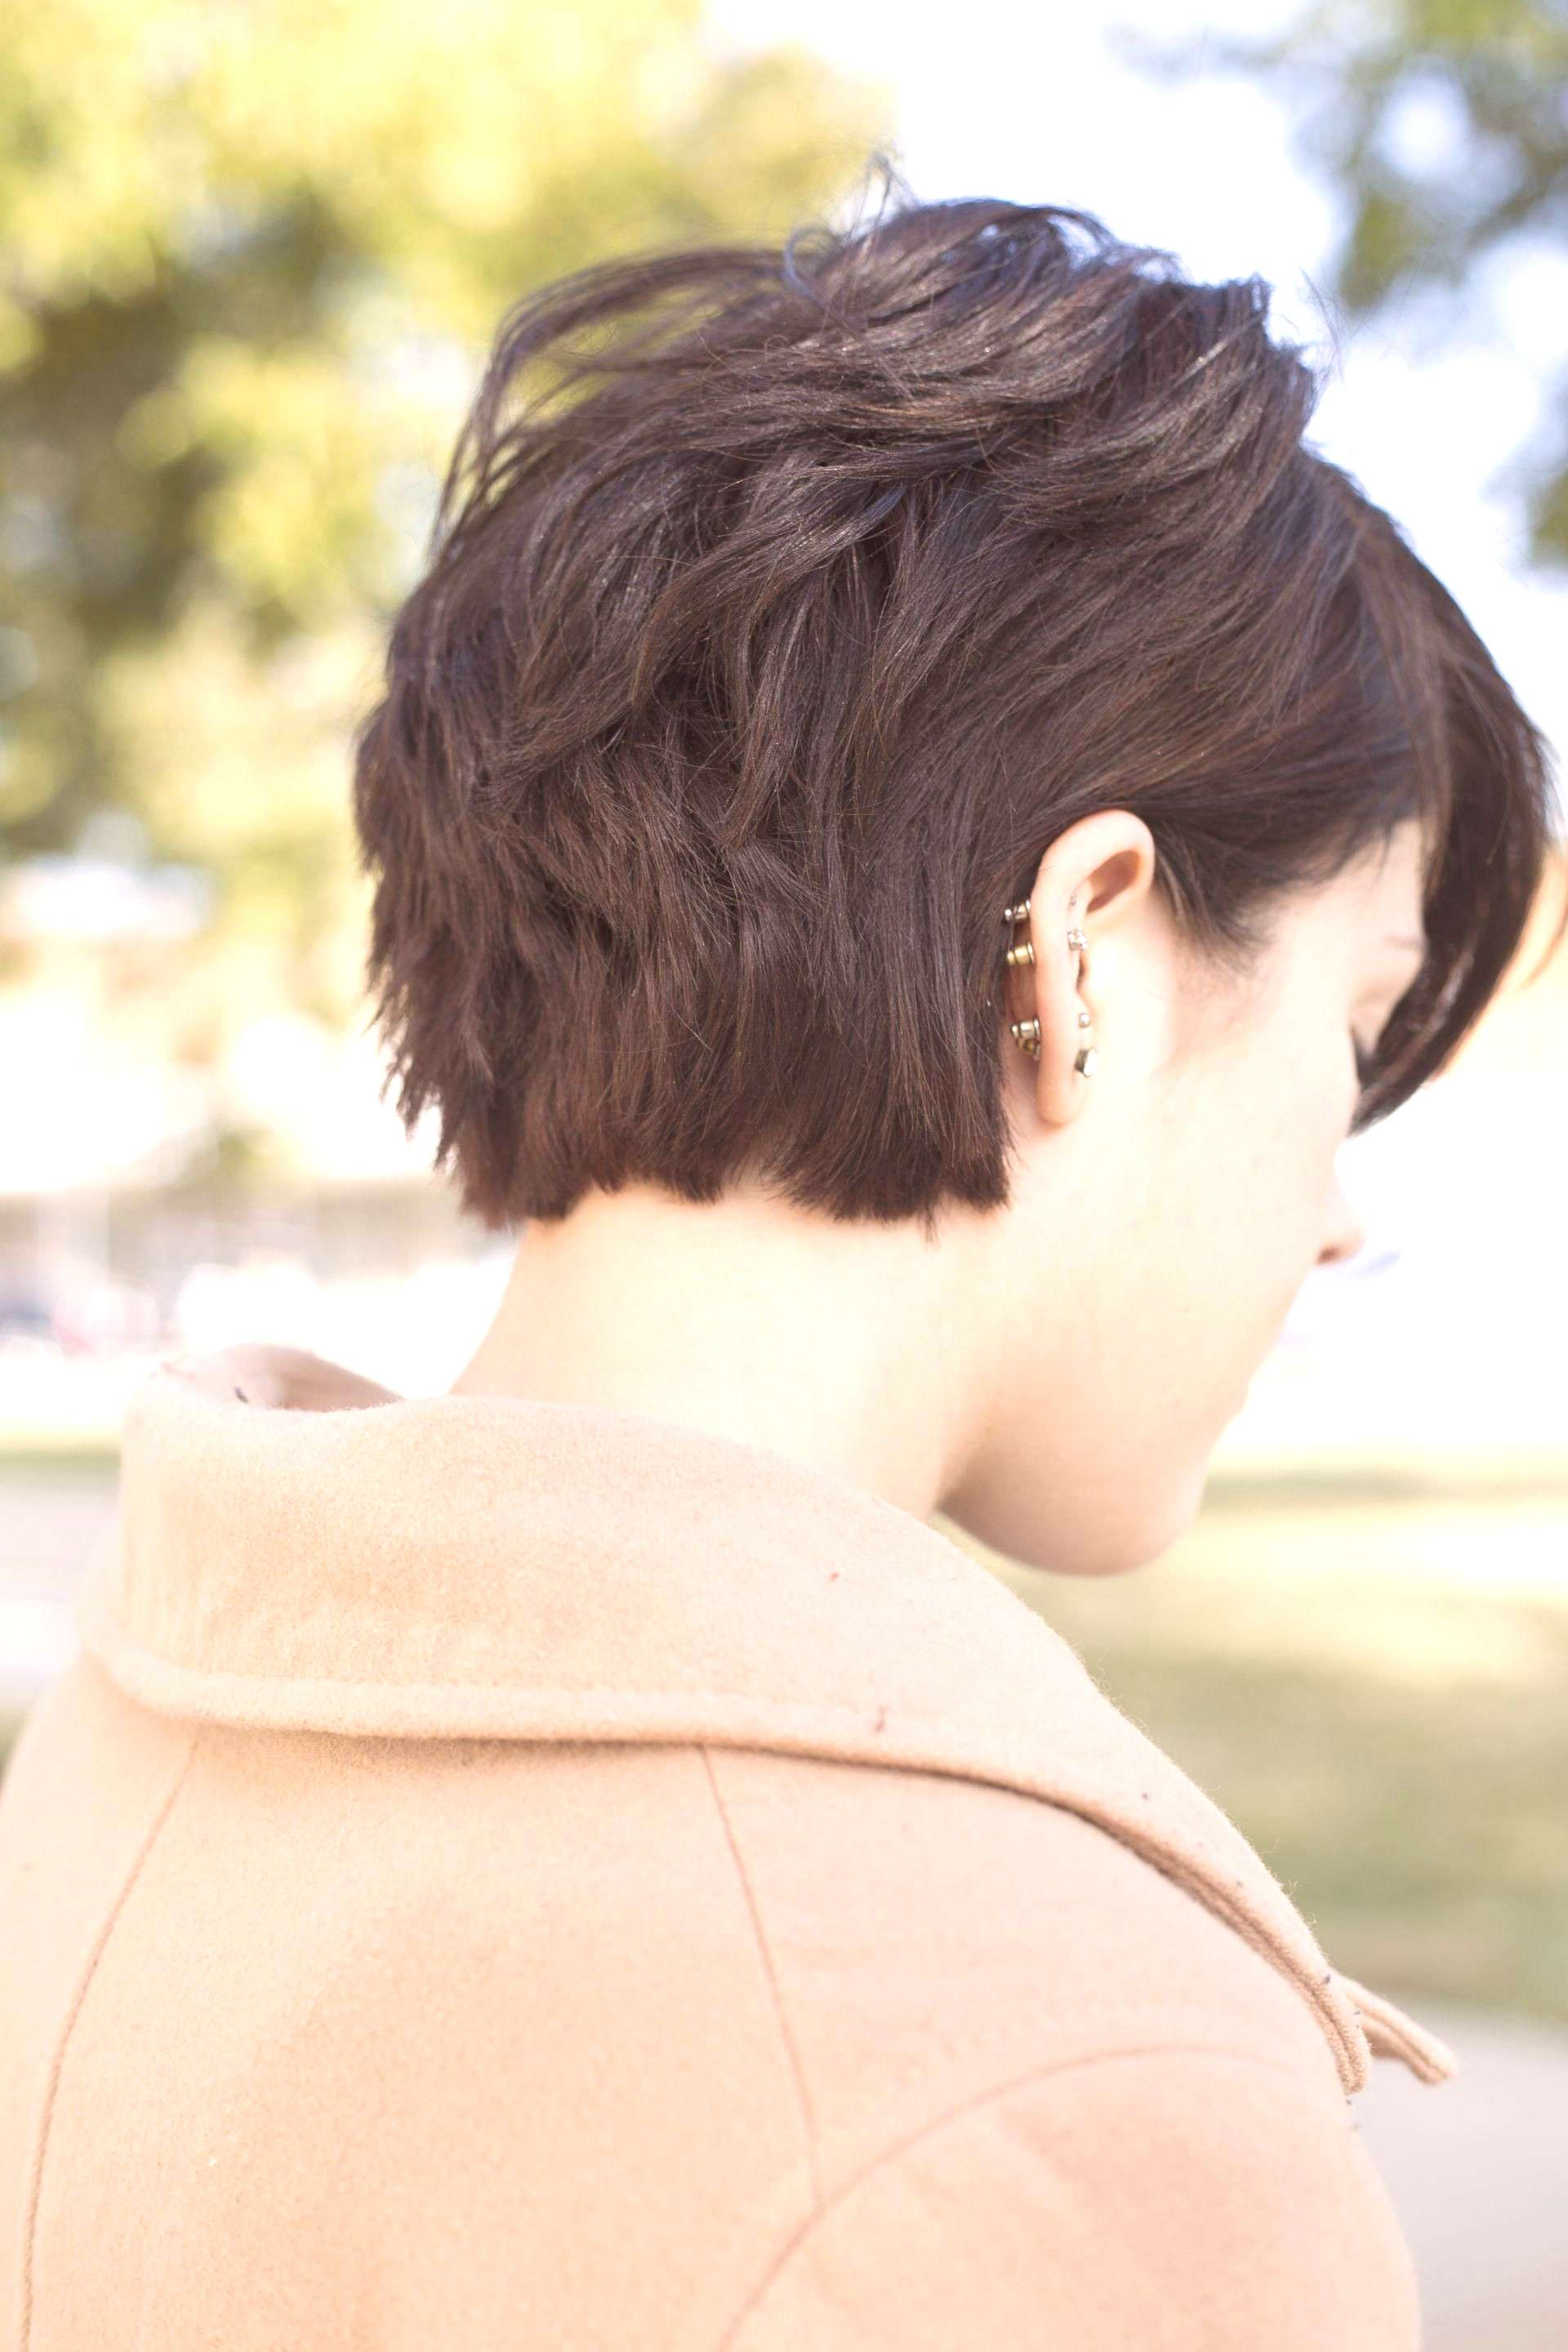 Project Pixie – Watch as I grow out my pixie cut.